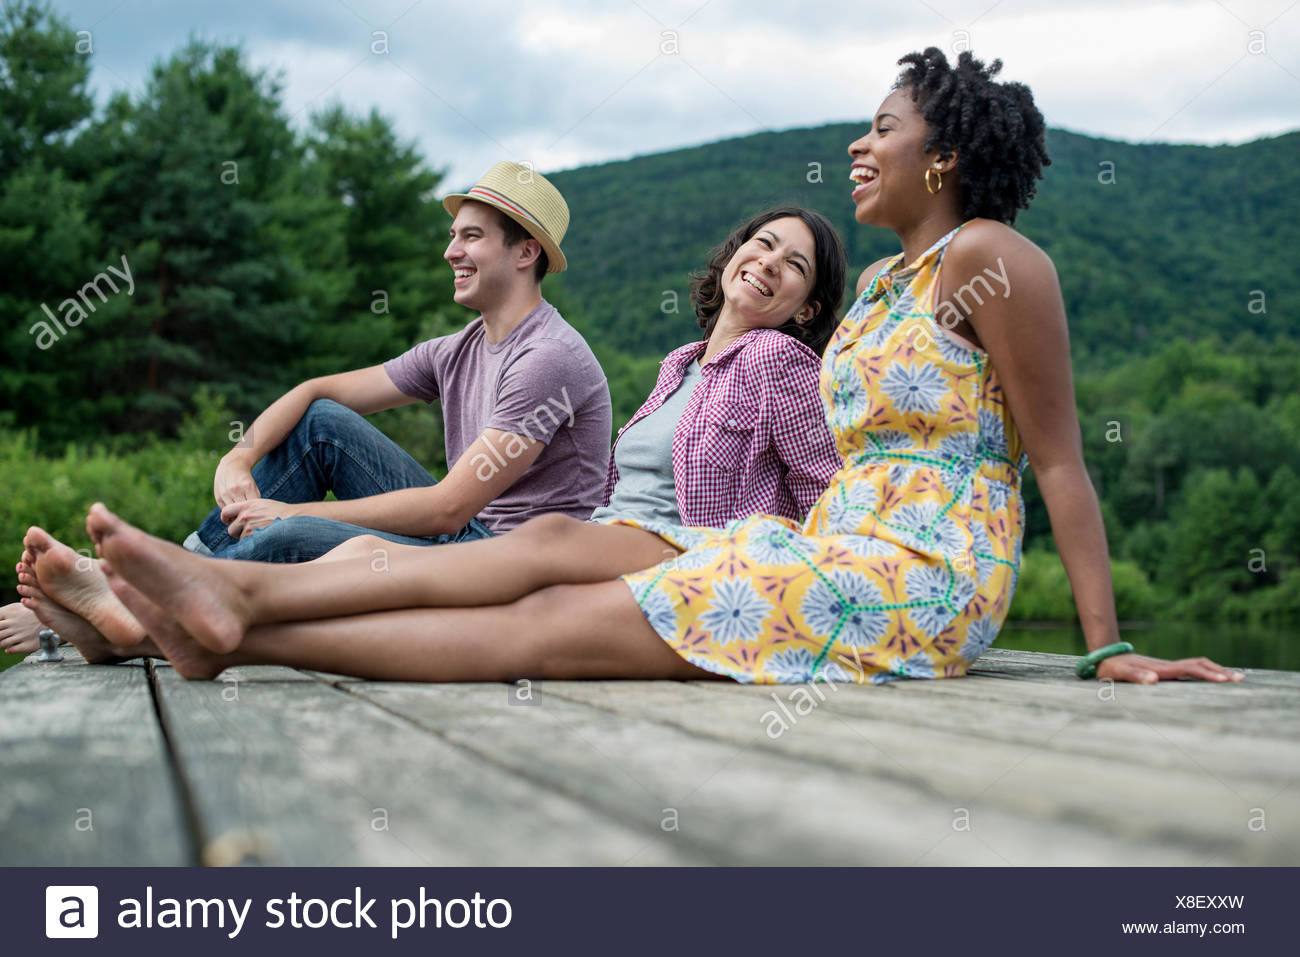 A group of people sitting on a woode pier overlooking a lake. Stock Photo